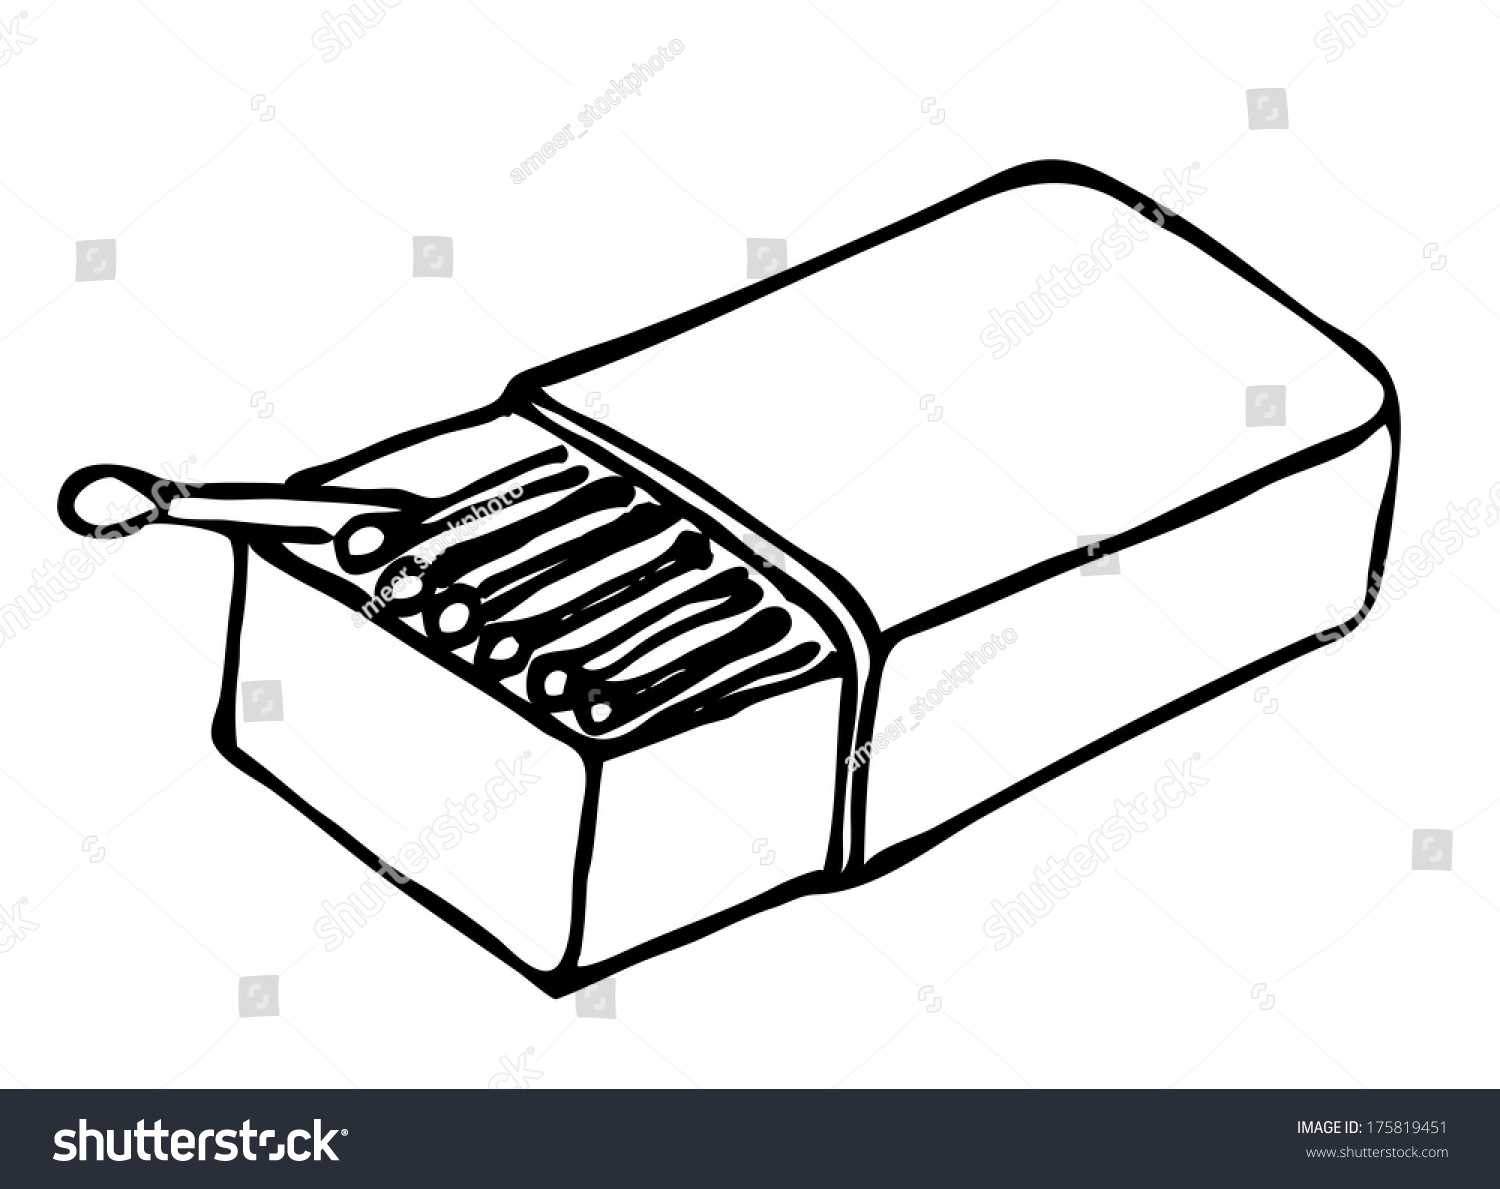 Matches Box Stock Illustration 175819451 - Shutterstock for Matches Clip Art  51ane